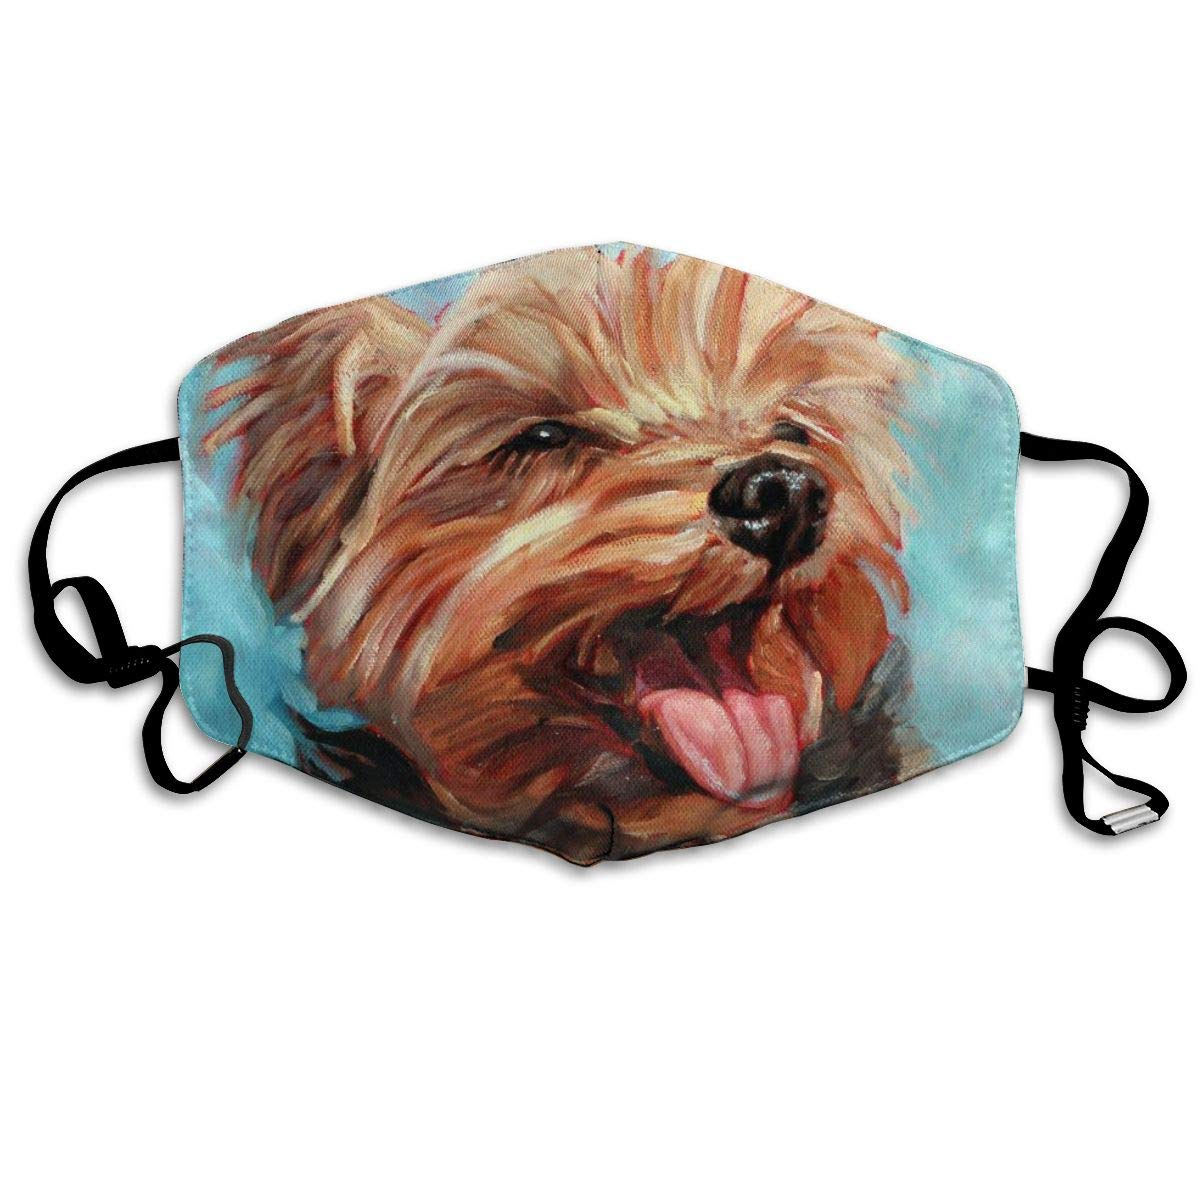 Dog Yorkshire Terrier Unisex Mask Indoor Outdoor Cycling Camping Travel Windproof Sun Anti Dust Mask Mouth With Adjustable Ear